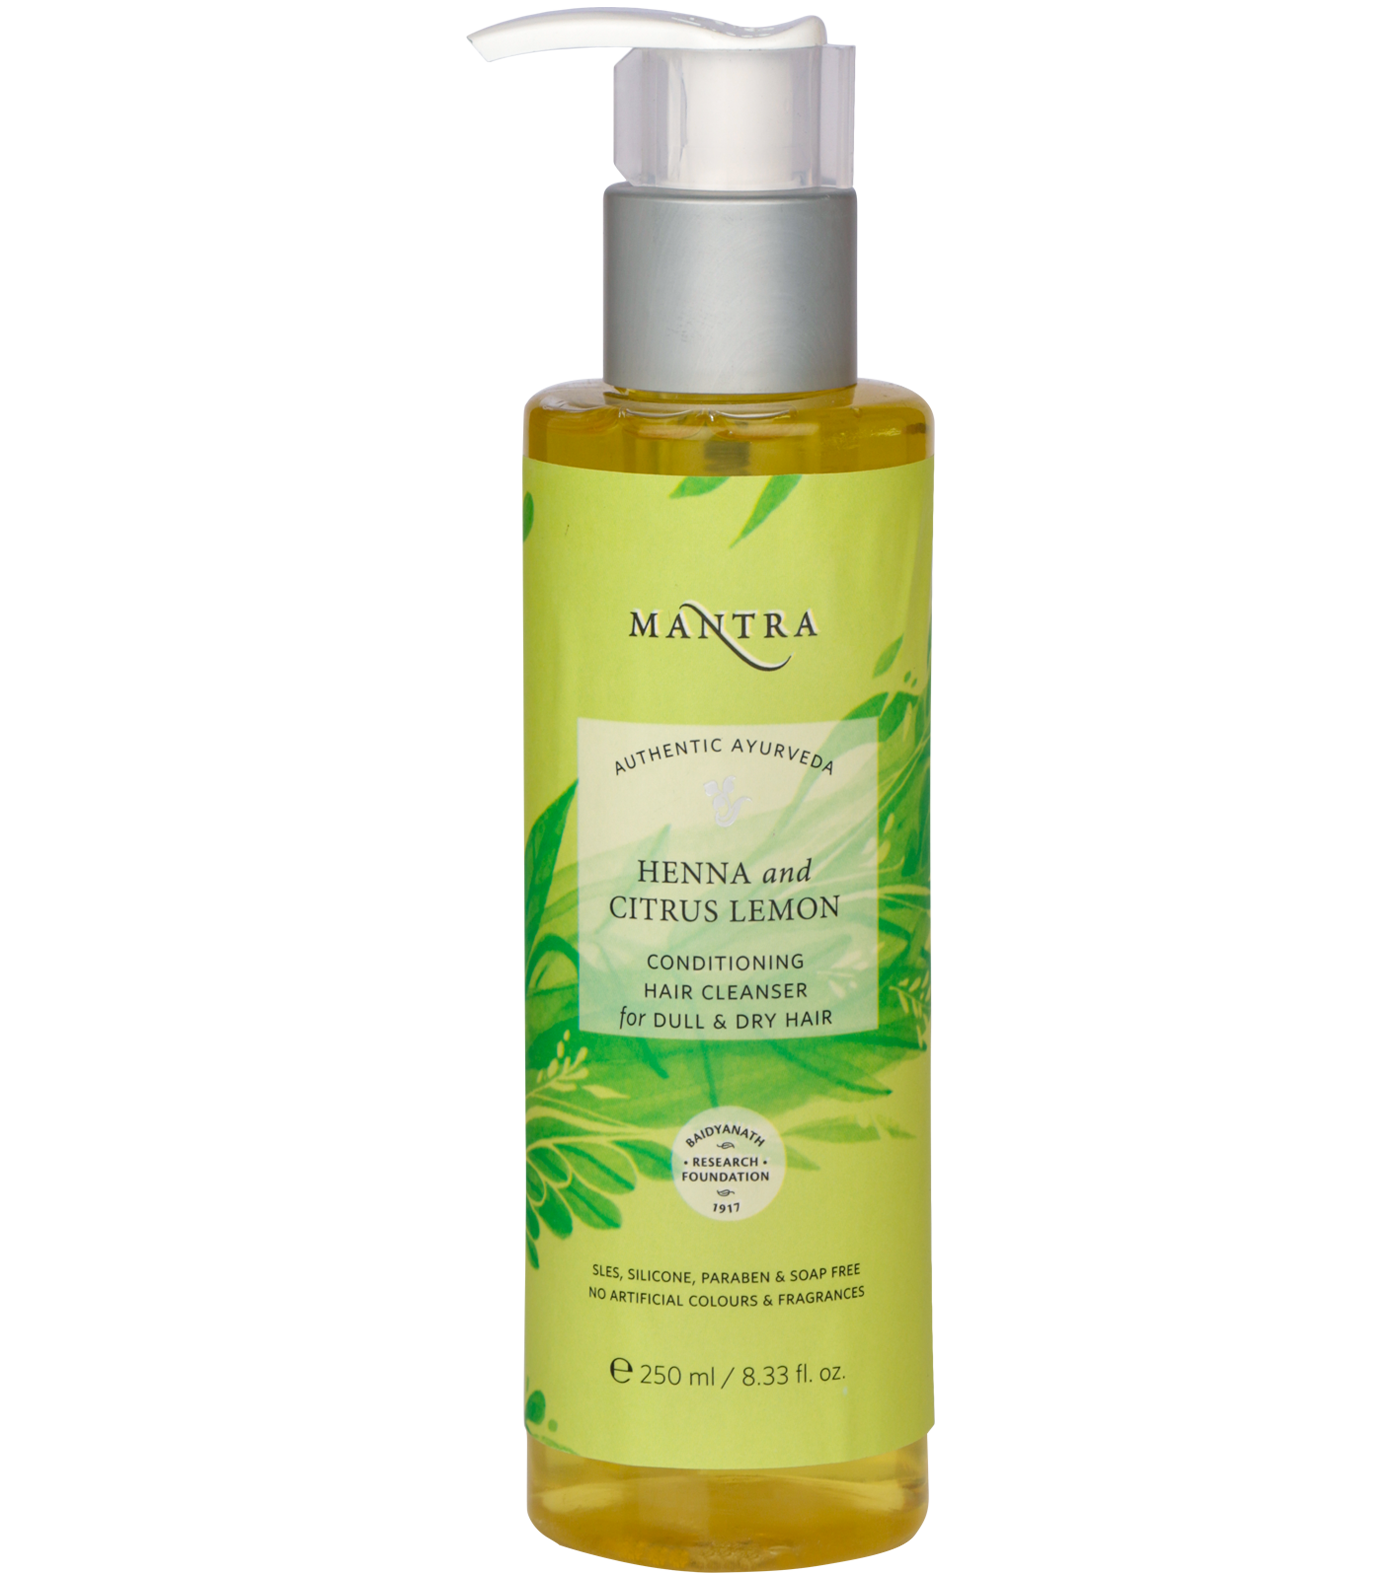 Henna and Citrus Lemon Conditioning Hair Cleanser for Dull & Dry Hair